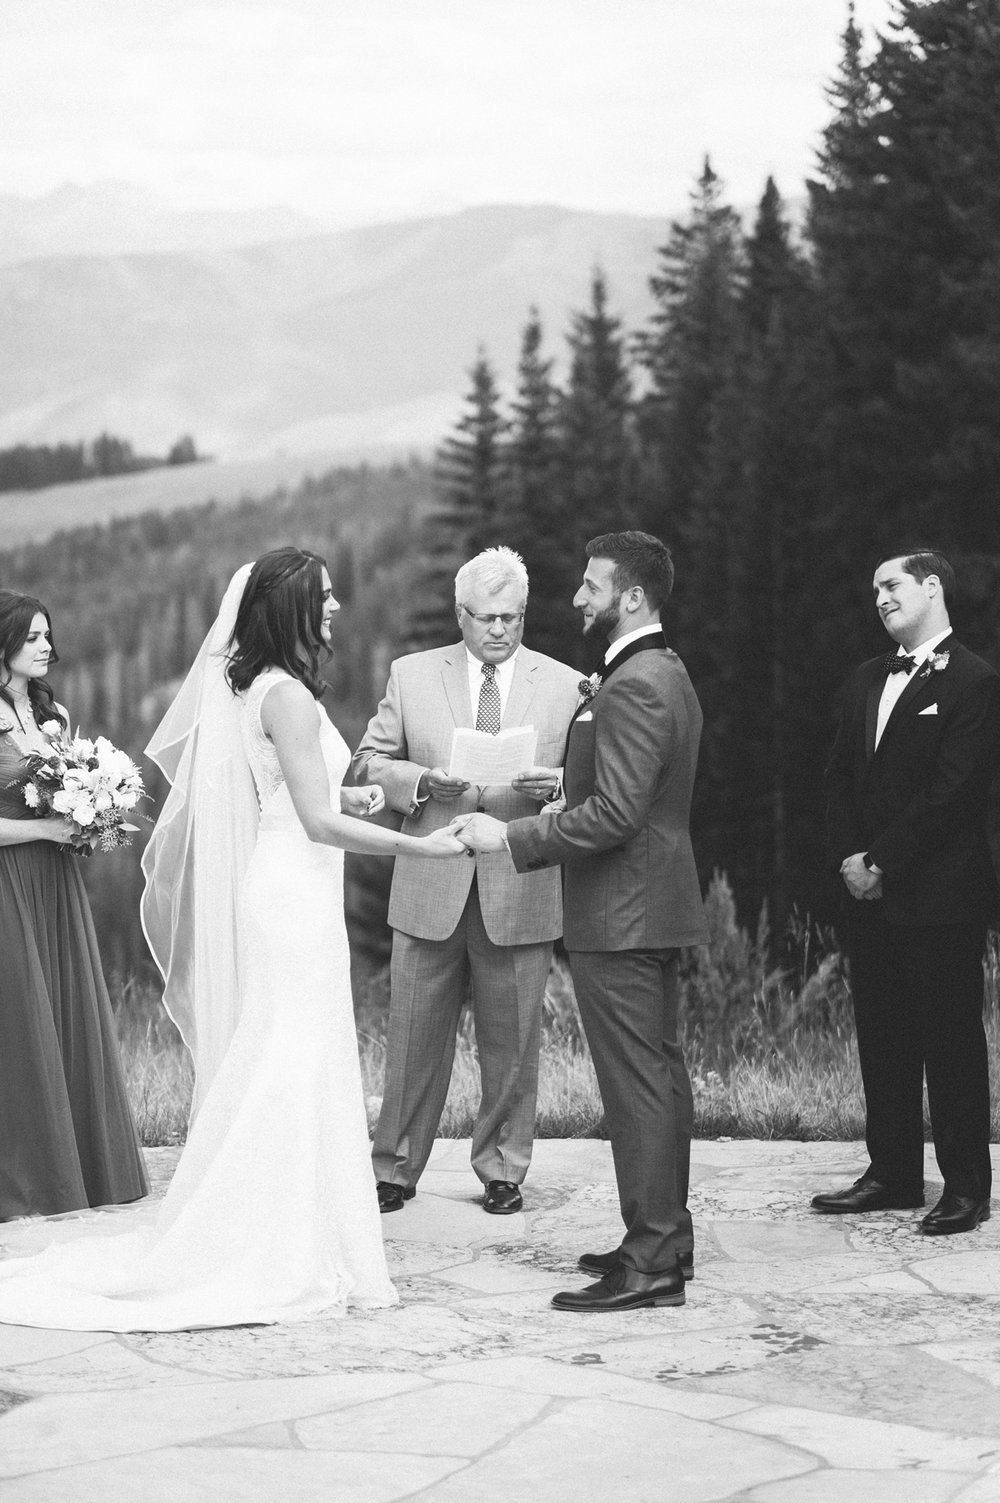 307-beaver-creek--mountain-top-wedding--vows--emotional--black-and-white.jpg